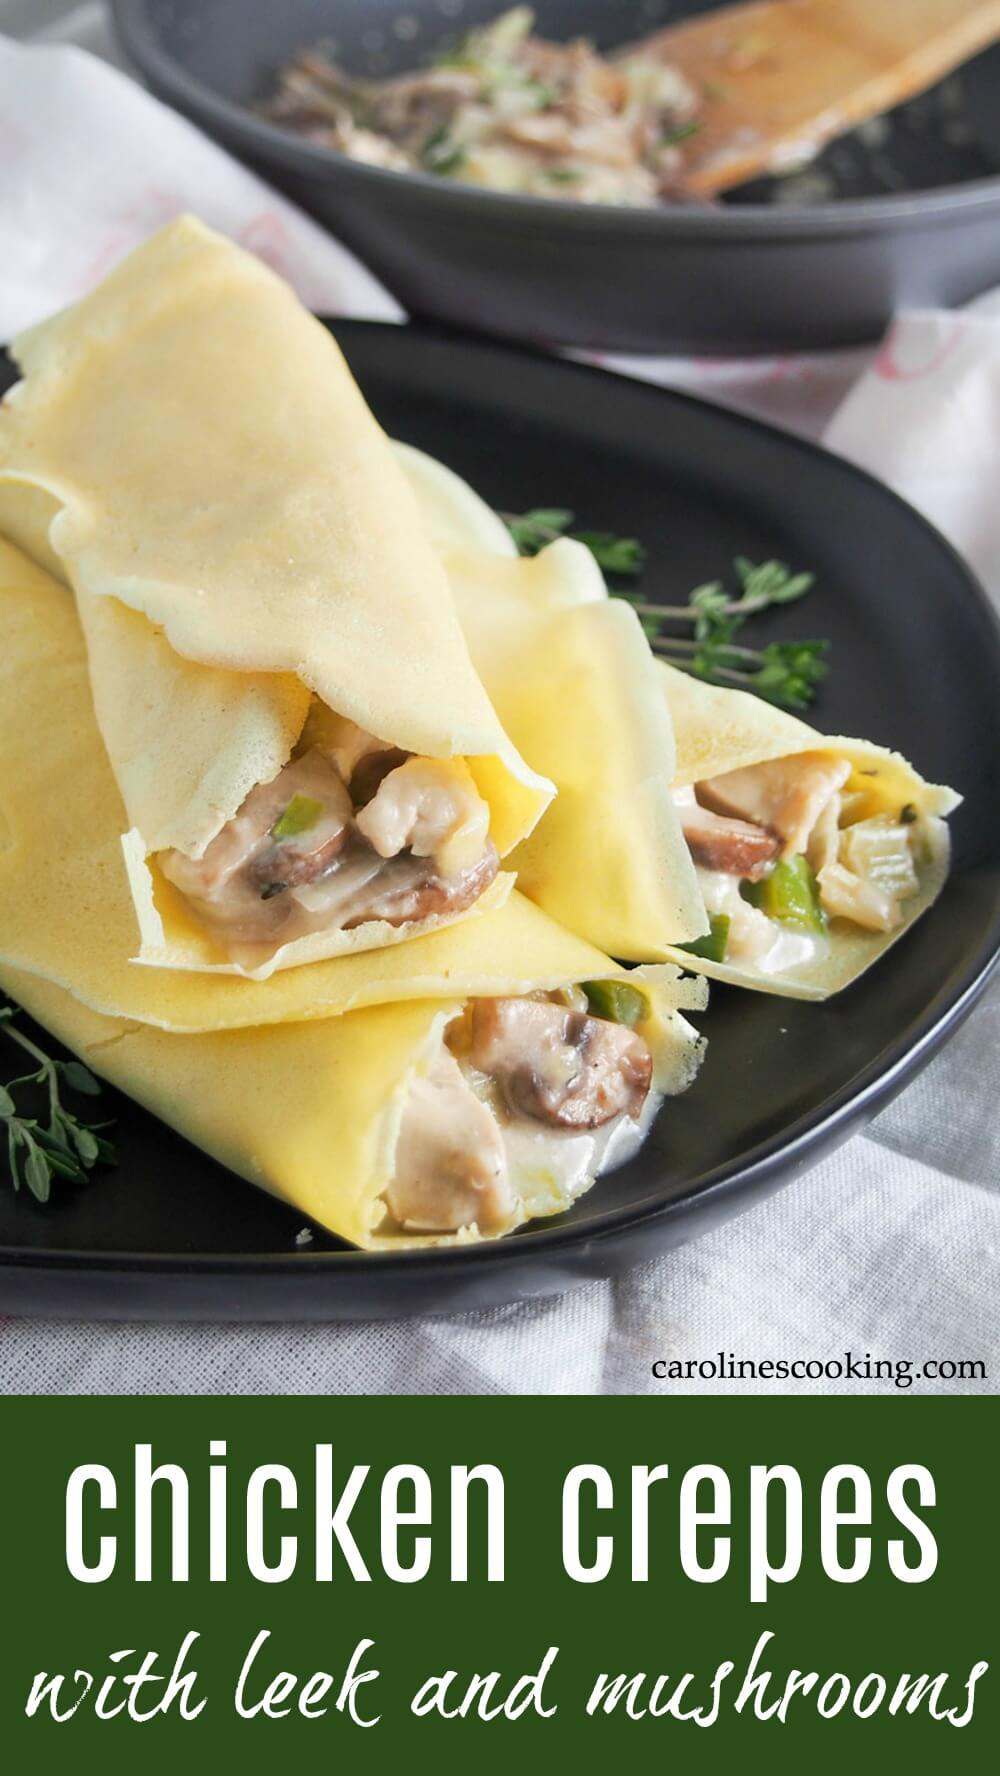 These turkey or chicken crepes with leek and mushrooms are a great way to use leftover meat in a tasty comforting dish. They're great to make with Thanksgiving leftovers, or if you have a roast chicken to repurpose in a very different meal. You could also use the sauce for other dishes like as a filling for baked potatoes, or over rice. Creamy, cheesy and easy to make, too! #leftovers #turkey #chicken #thanksgiving #christmas